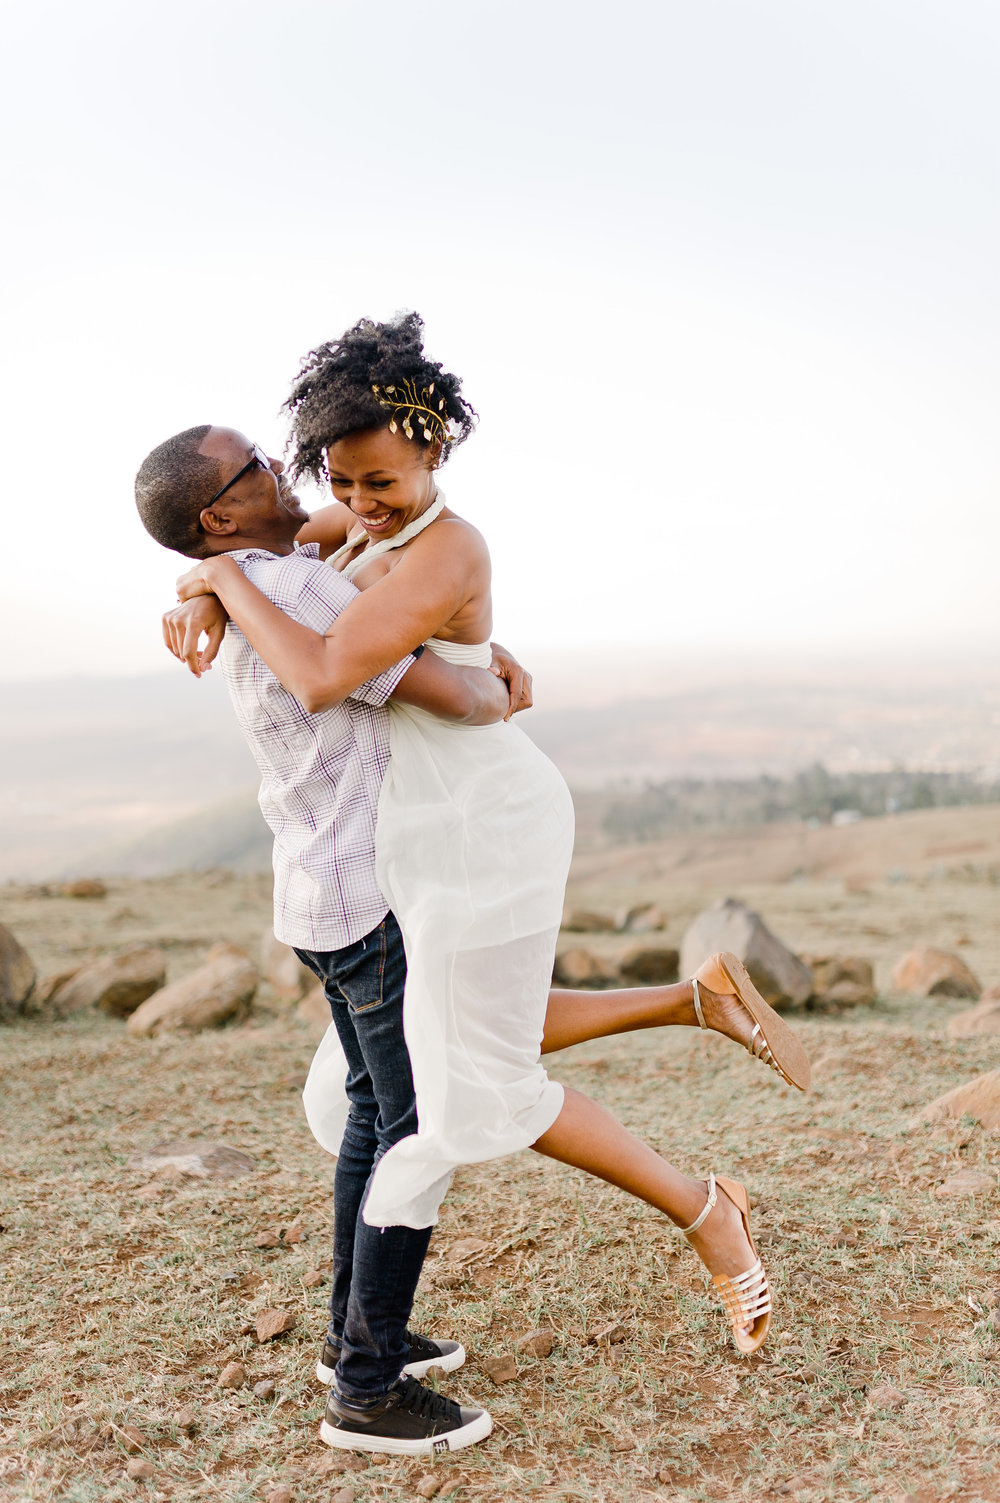 Anna-Hari-Photography-Kenyan-Wedding-Photographer-Ngong-Hills-Elopement-Kenya-46.jpg